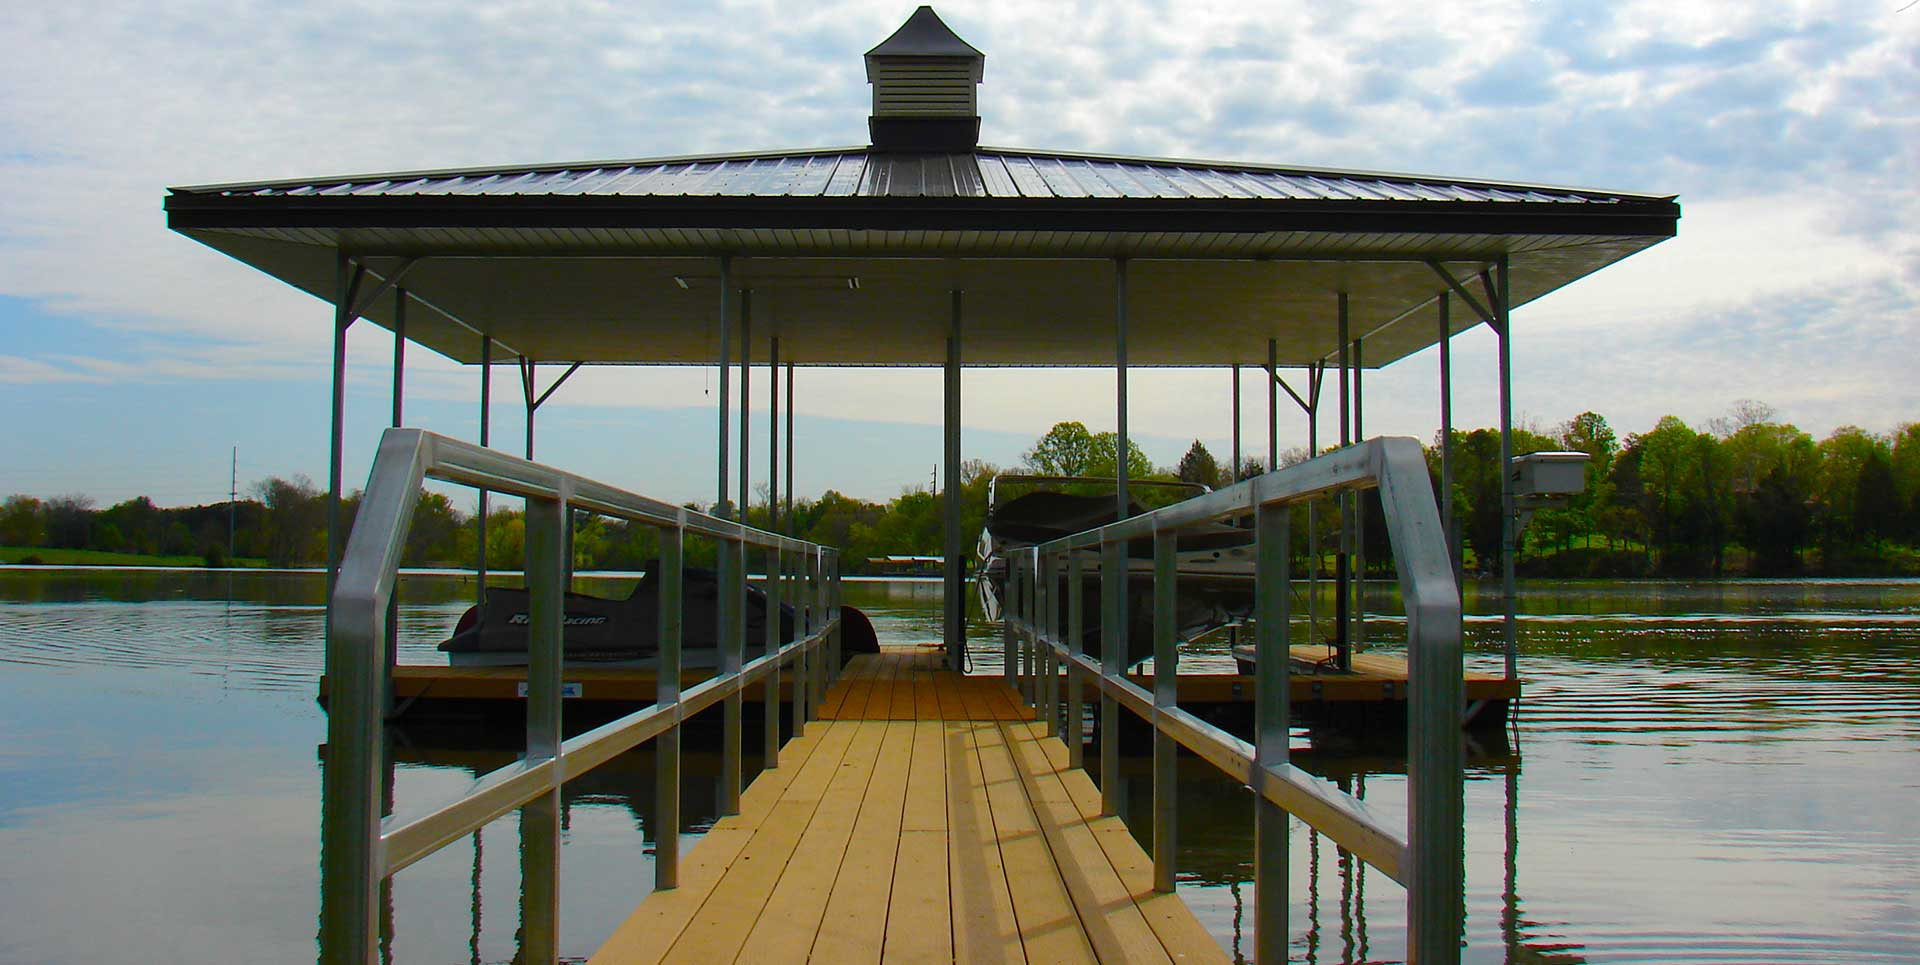 Galvanized Steel boat dock with gangway on river with trees in background